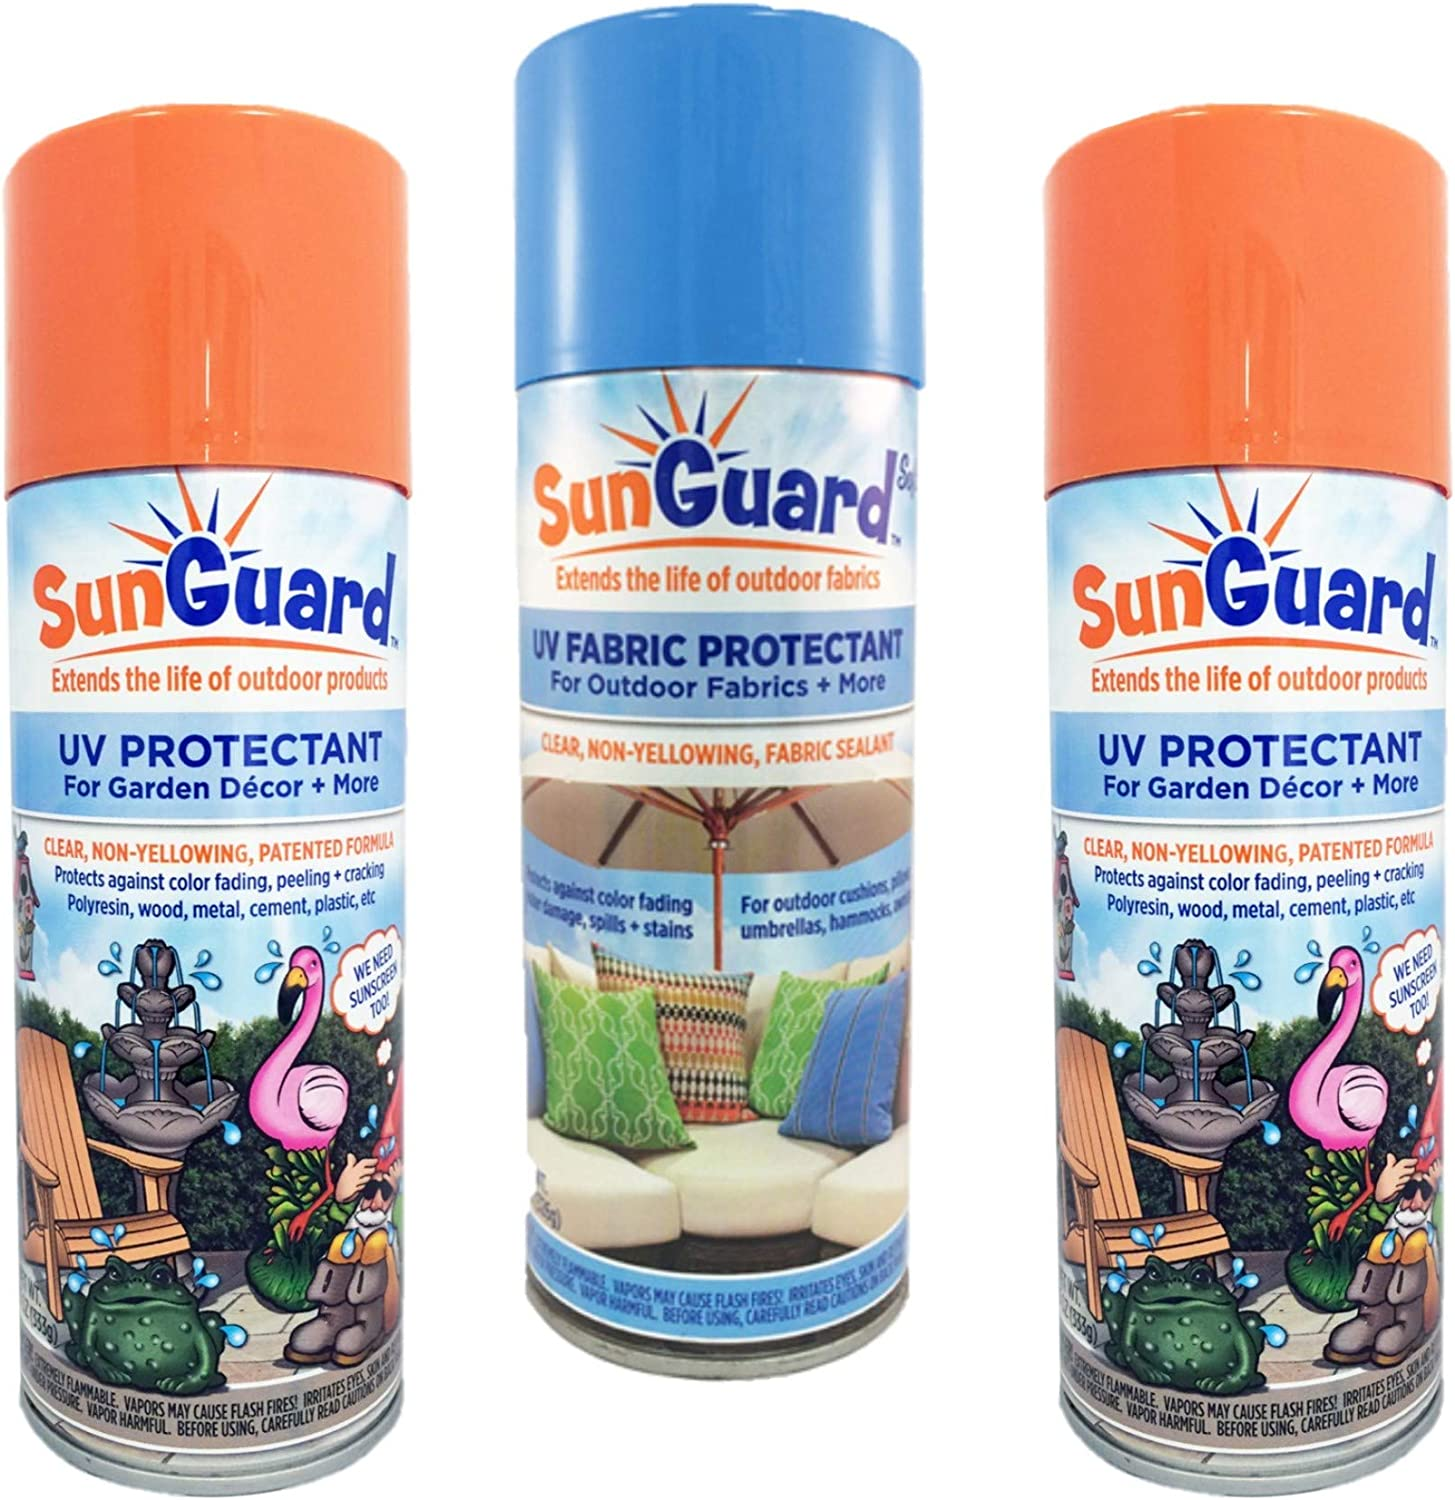 SUNGUARD UV Protectant Spray for Outdoor Decor & Fabric Prevents Fading and More 3-Pack